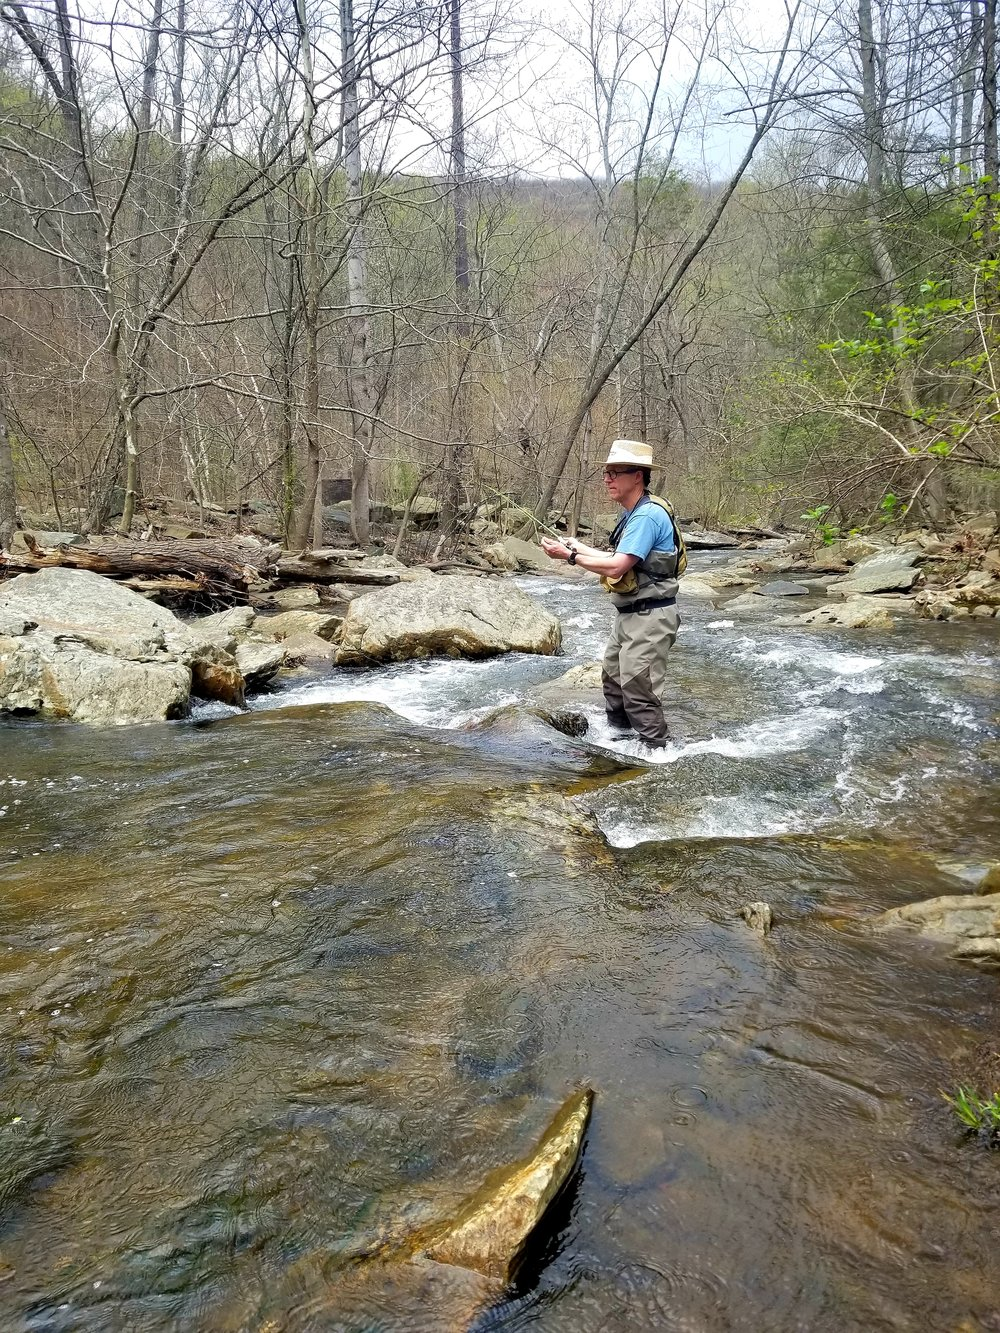 Hunting Creek is a high gradient mountain freestone stream. The lower section is considered a tail water and flows out of Hunting Creek Lake. The section above the lake has a native Brook Trout population. Hunting Creek typically fishes best in spring and fall when the water levels are higher.